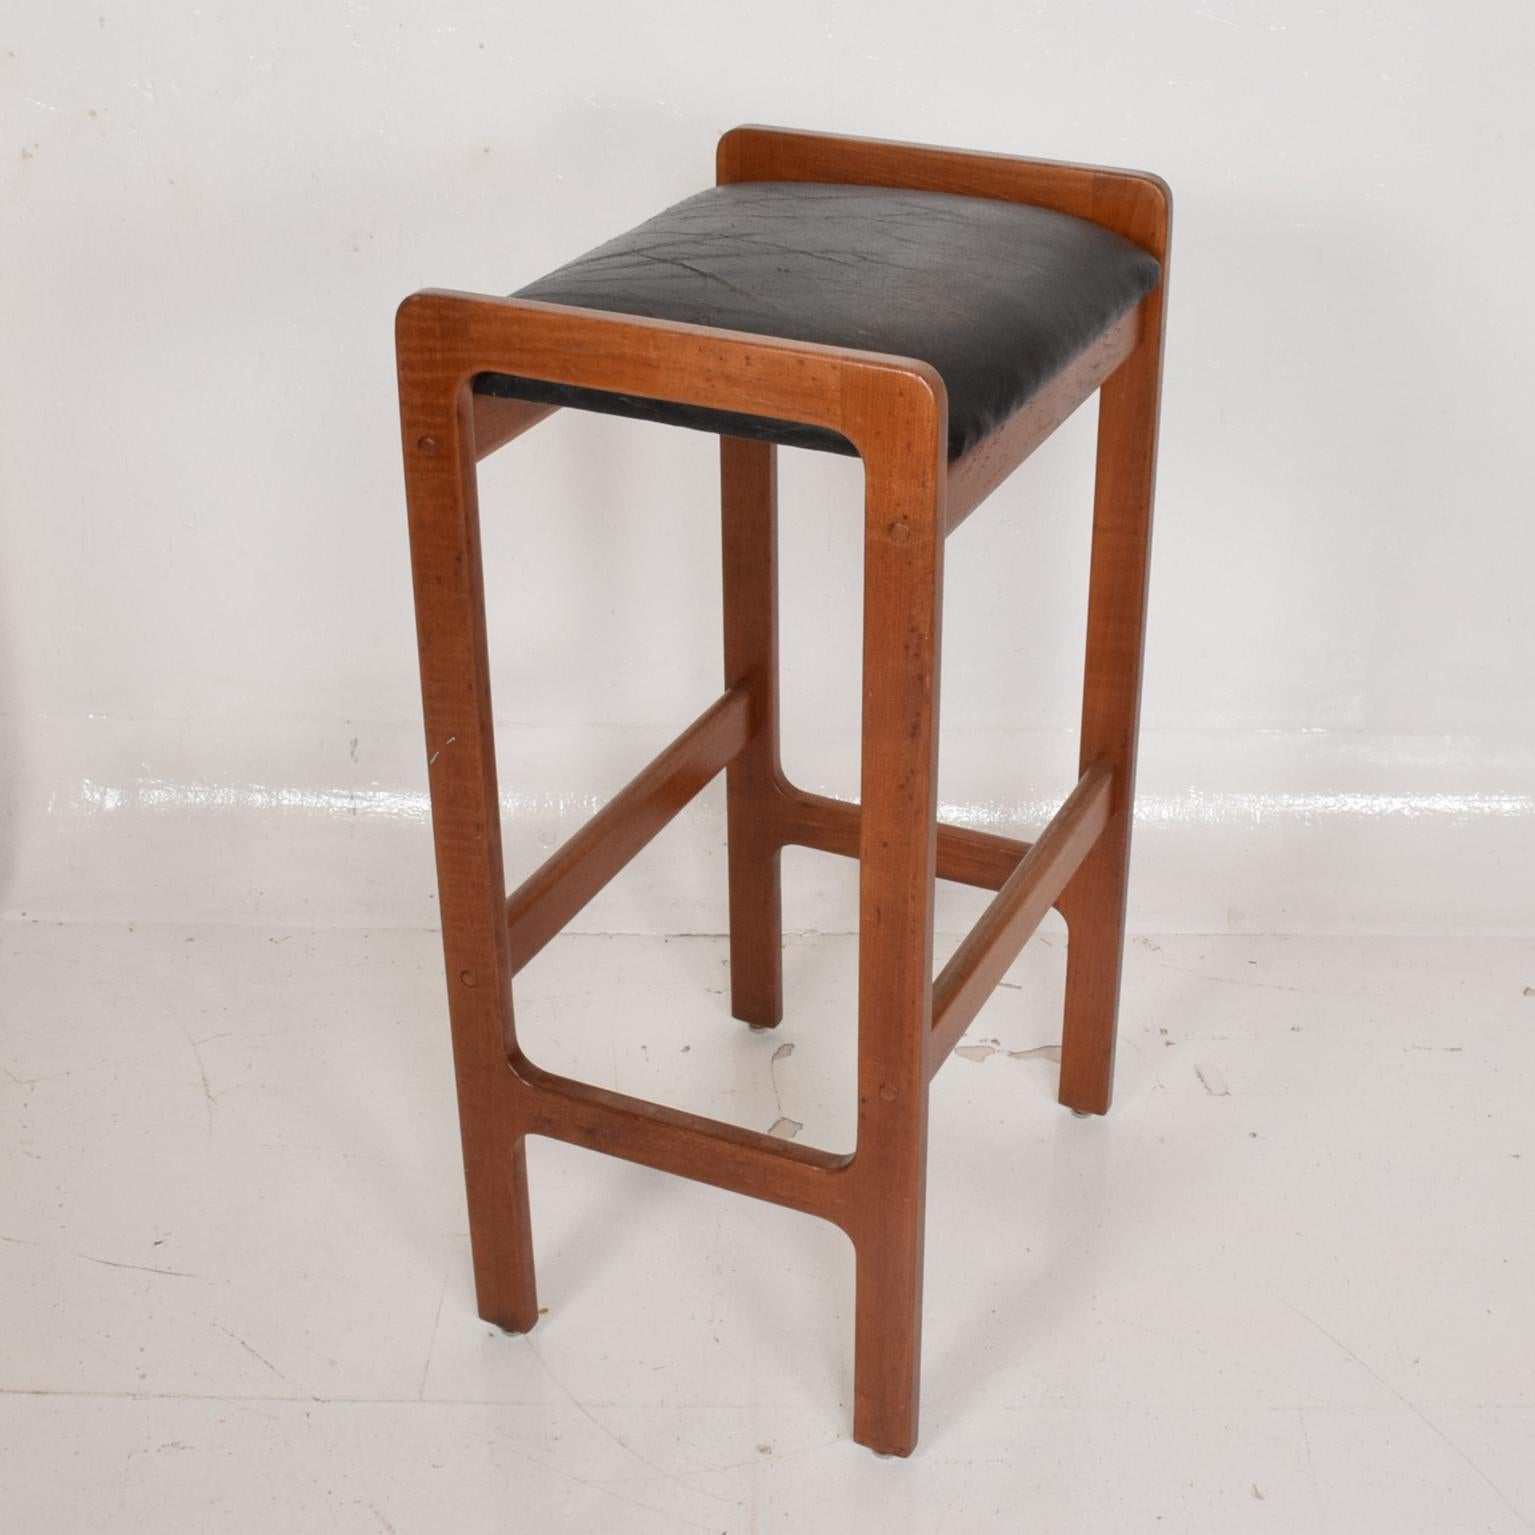 Danish Modern Teak Bar Stool With Leather Seat For Sale At 1stdibs